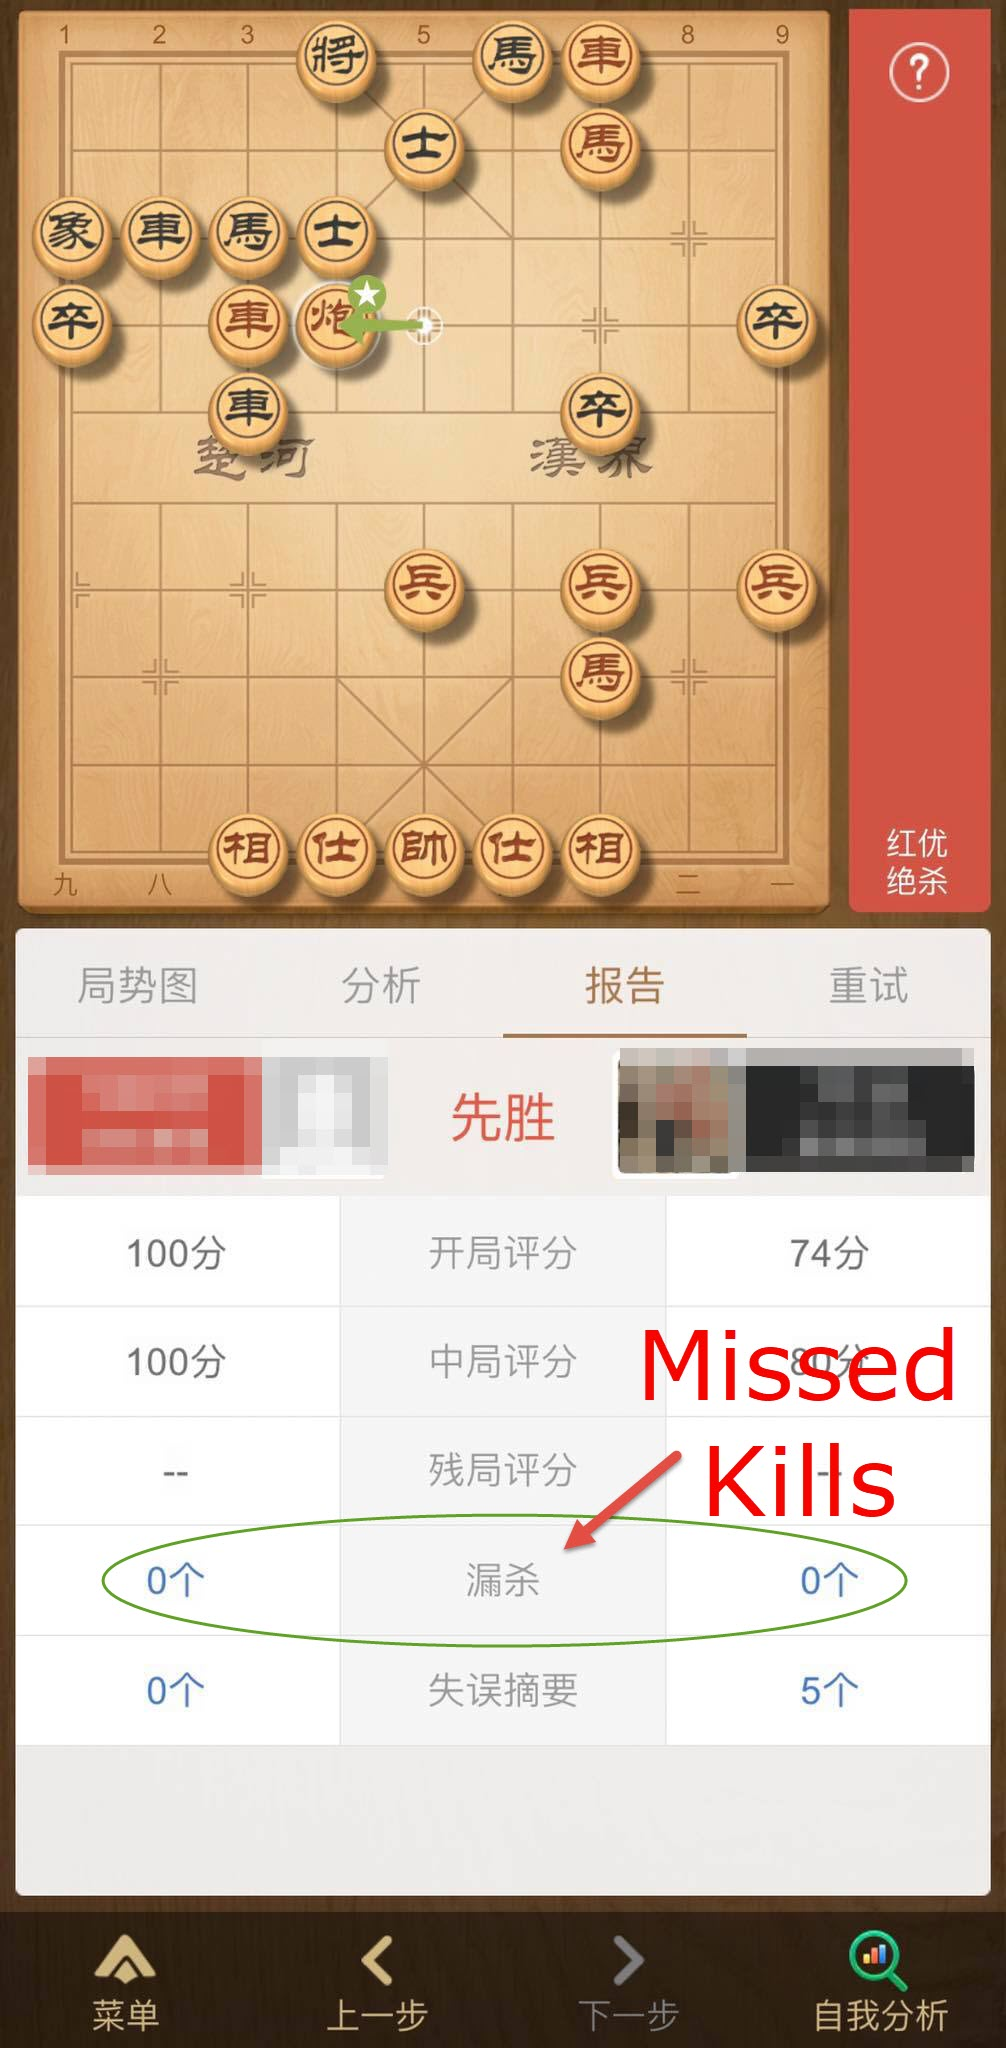 Tiantian analysis of game